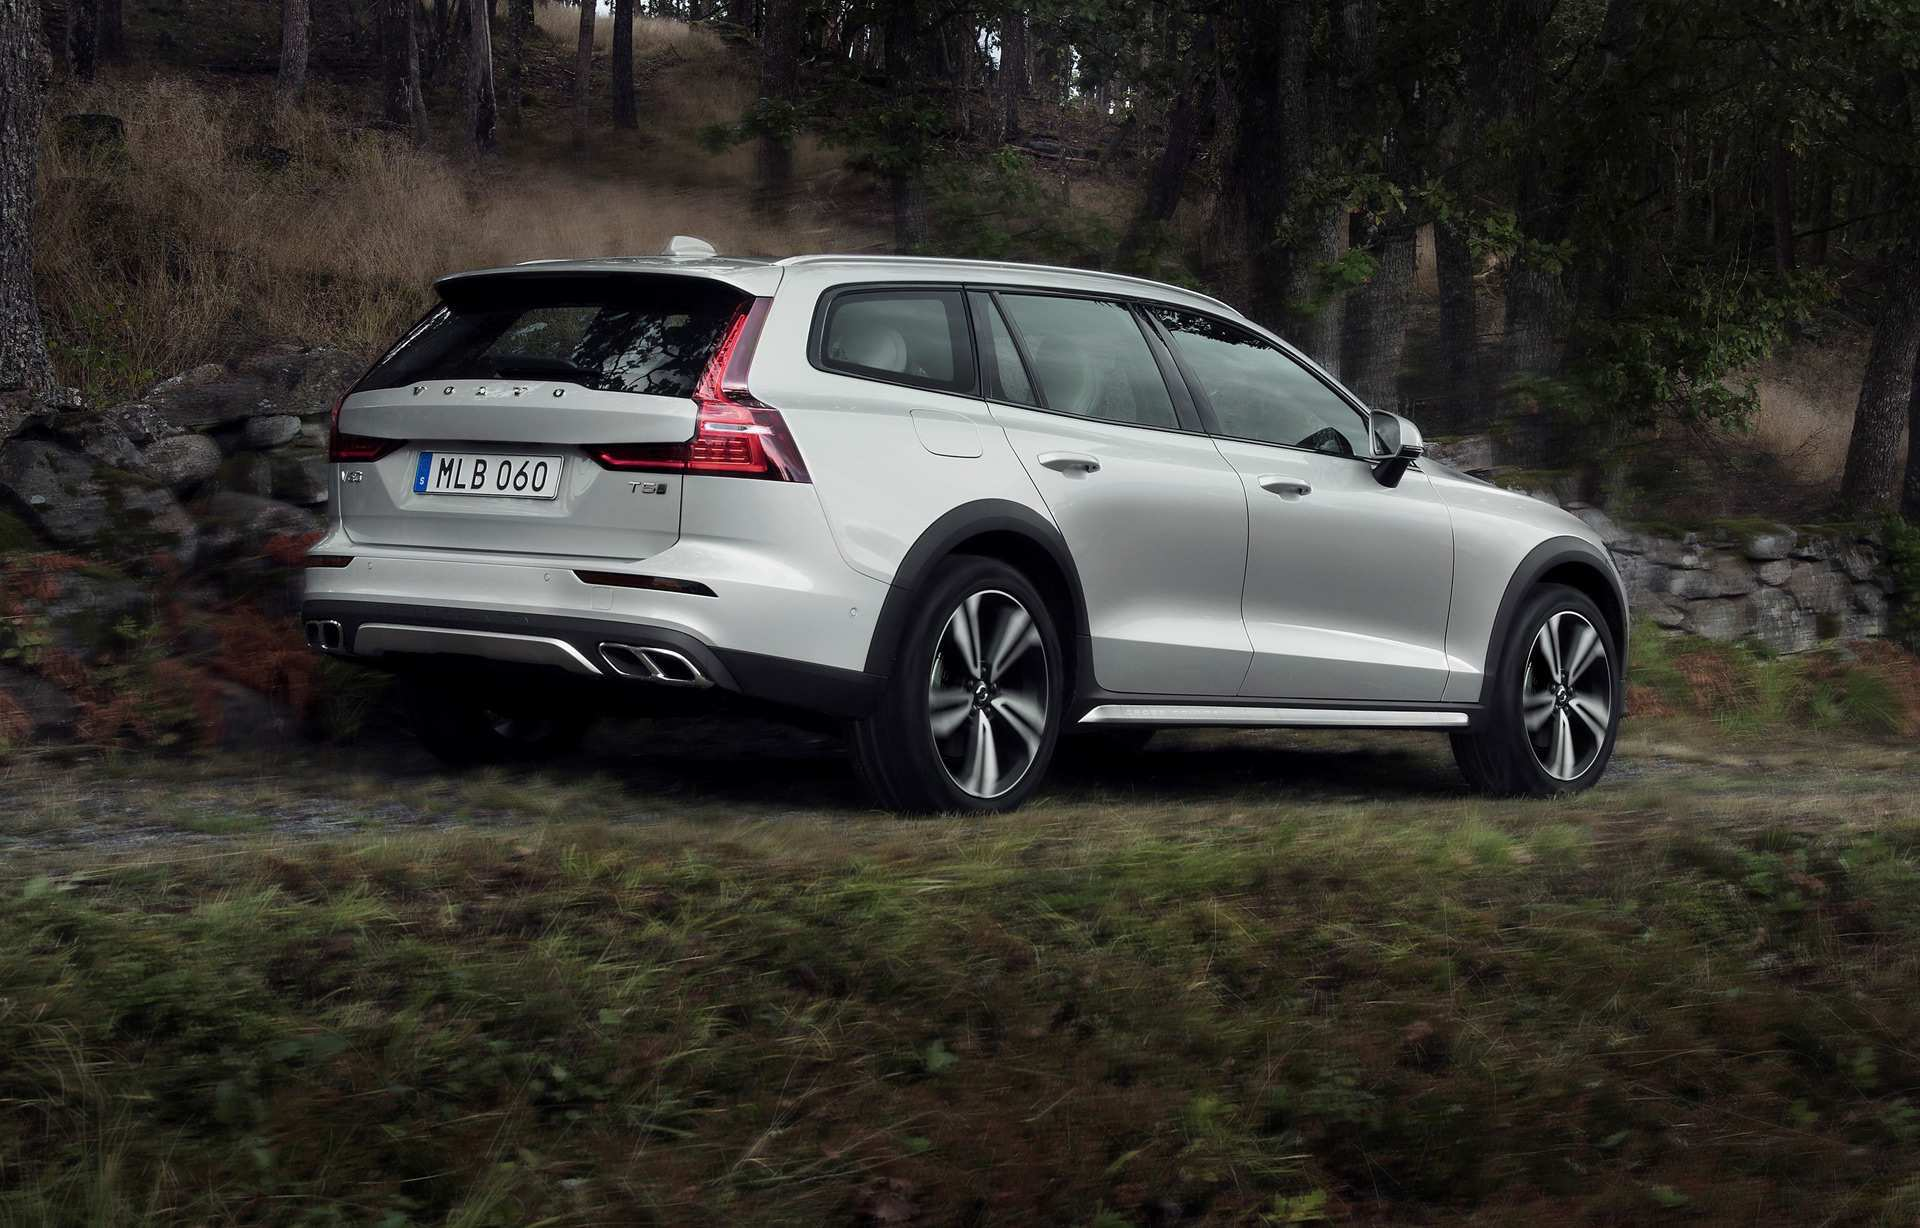 87 All New 2020 Volvo V60 Wagon Images